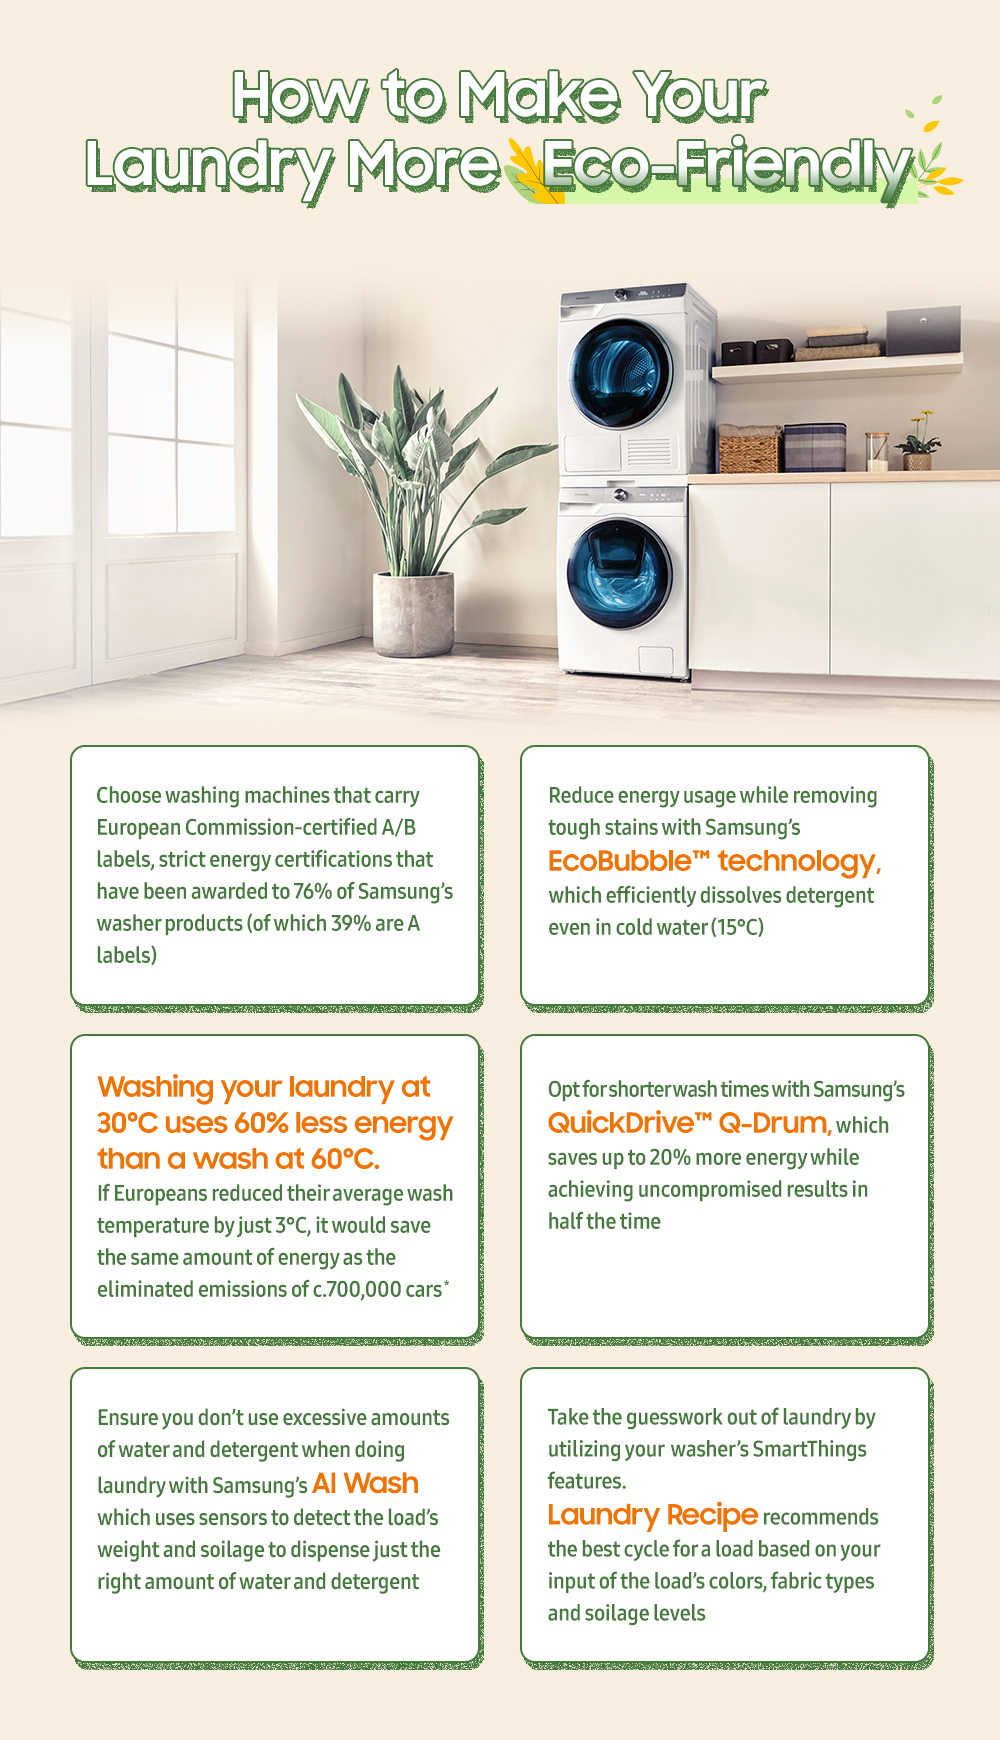 [Infographic] How Samsung's Washing Machines Can Make Your Laundry More Eco-Friendly